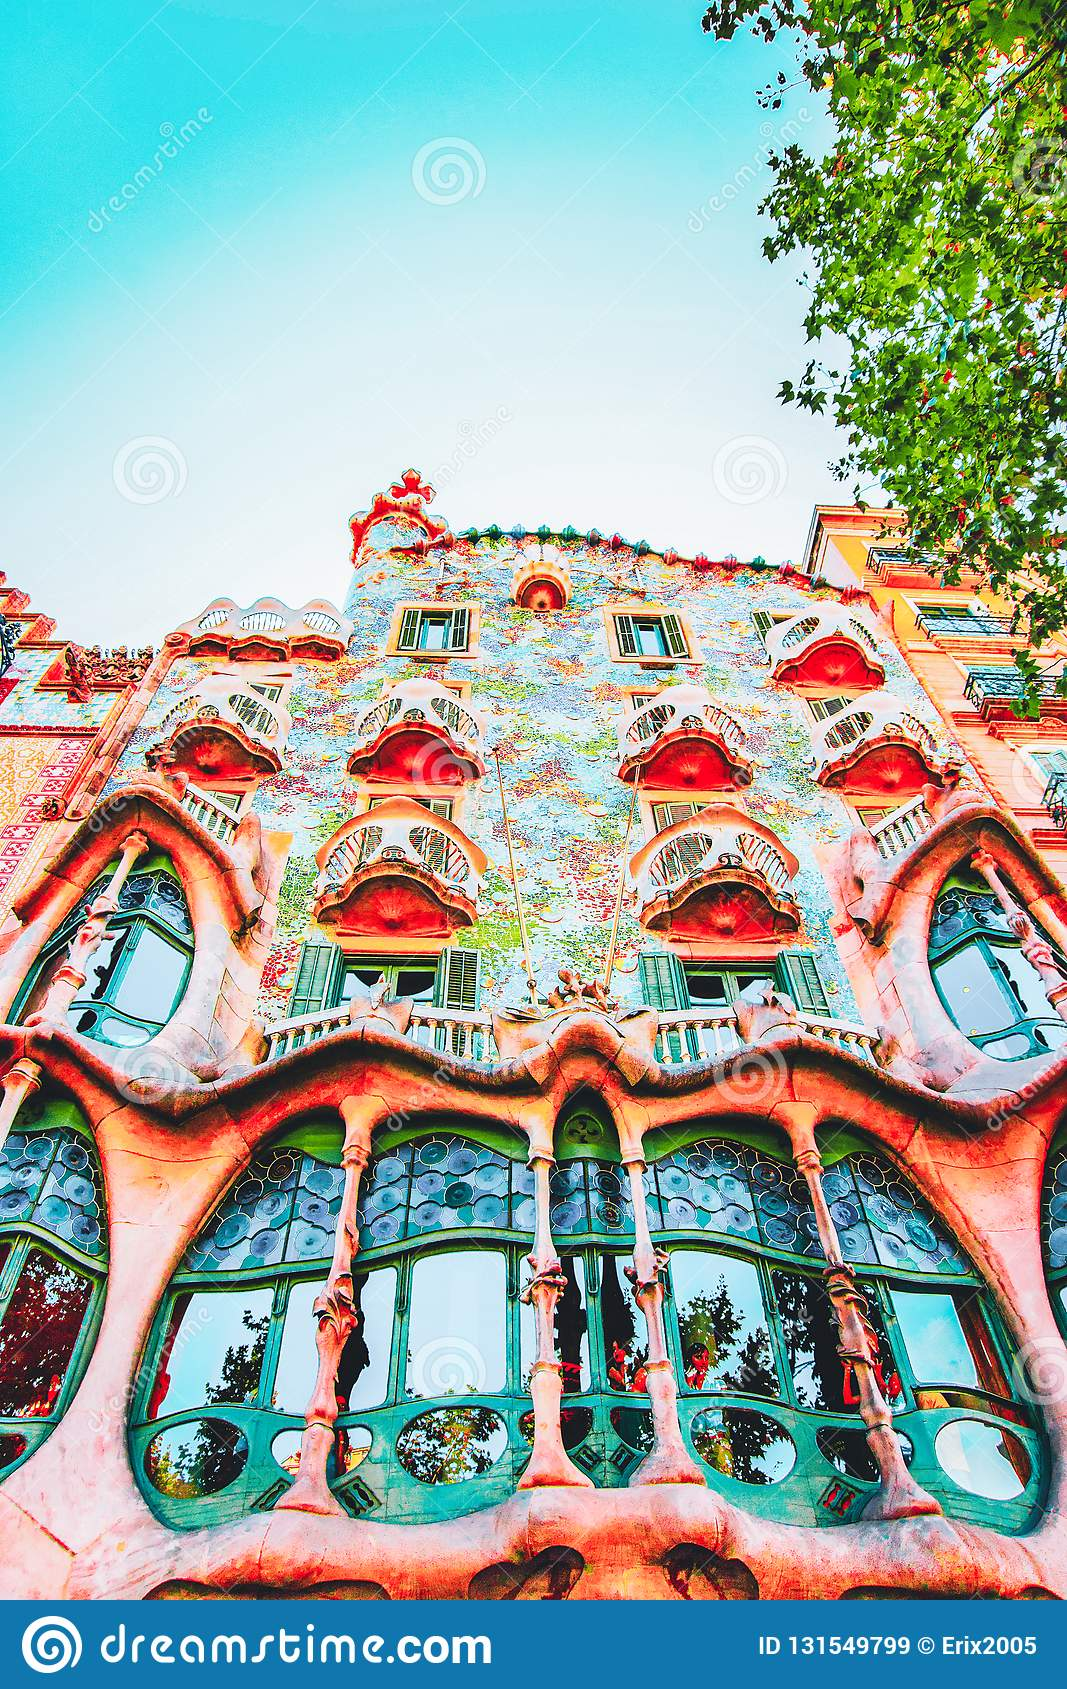 Barcelona, Spain - August 14, 2011: Facade of Casa Batllo building in Barcelona in Spain. It is also called as House of Bones. It